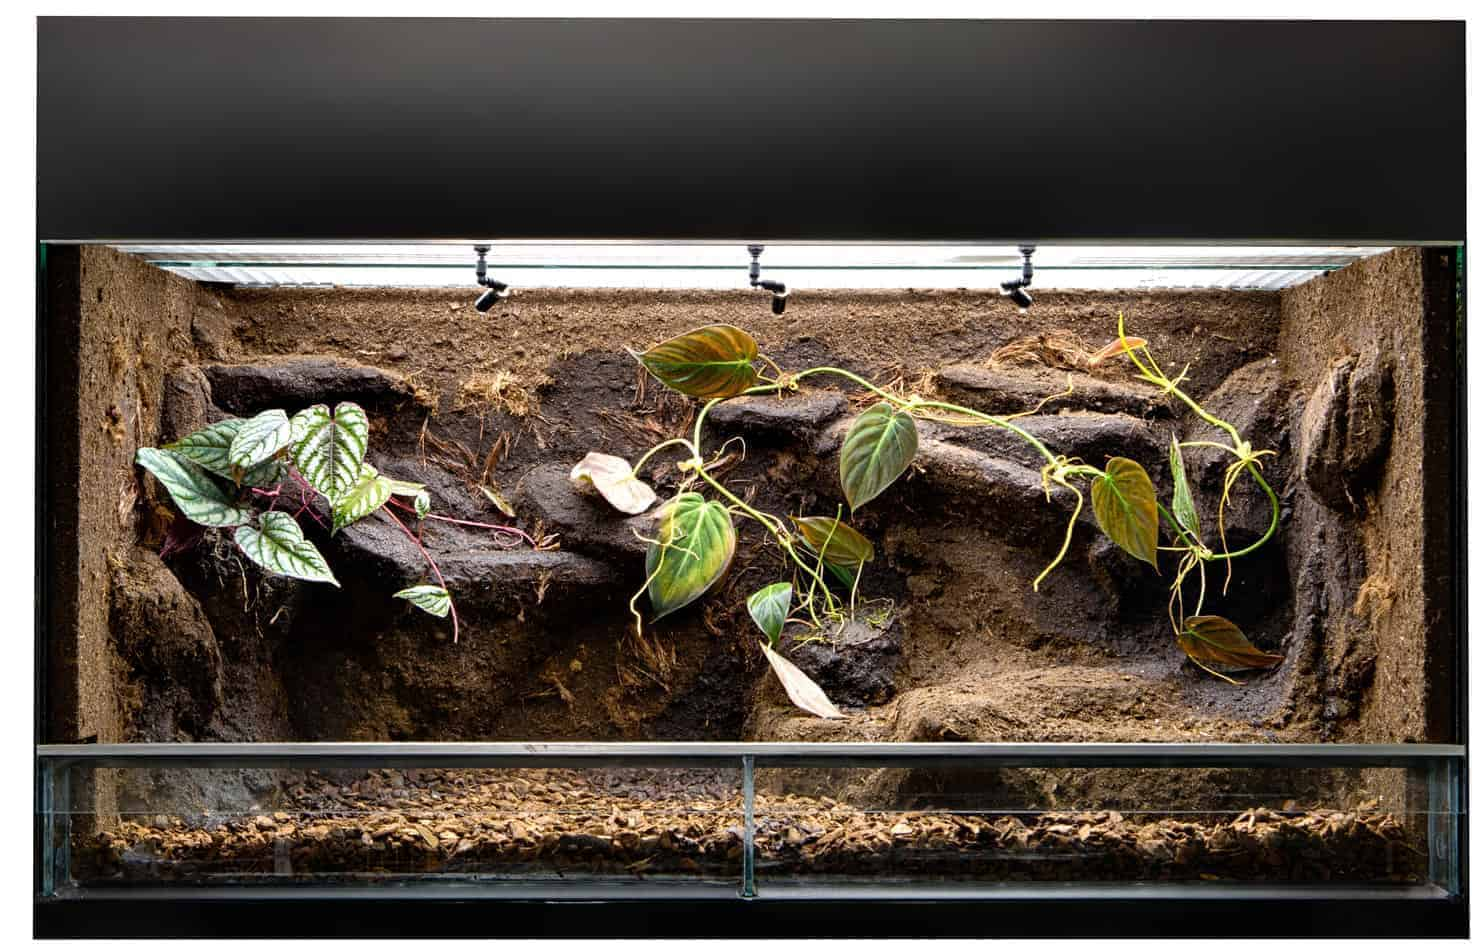 Recommended Terrarium Size for a Red-Tailed Boa